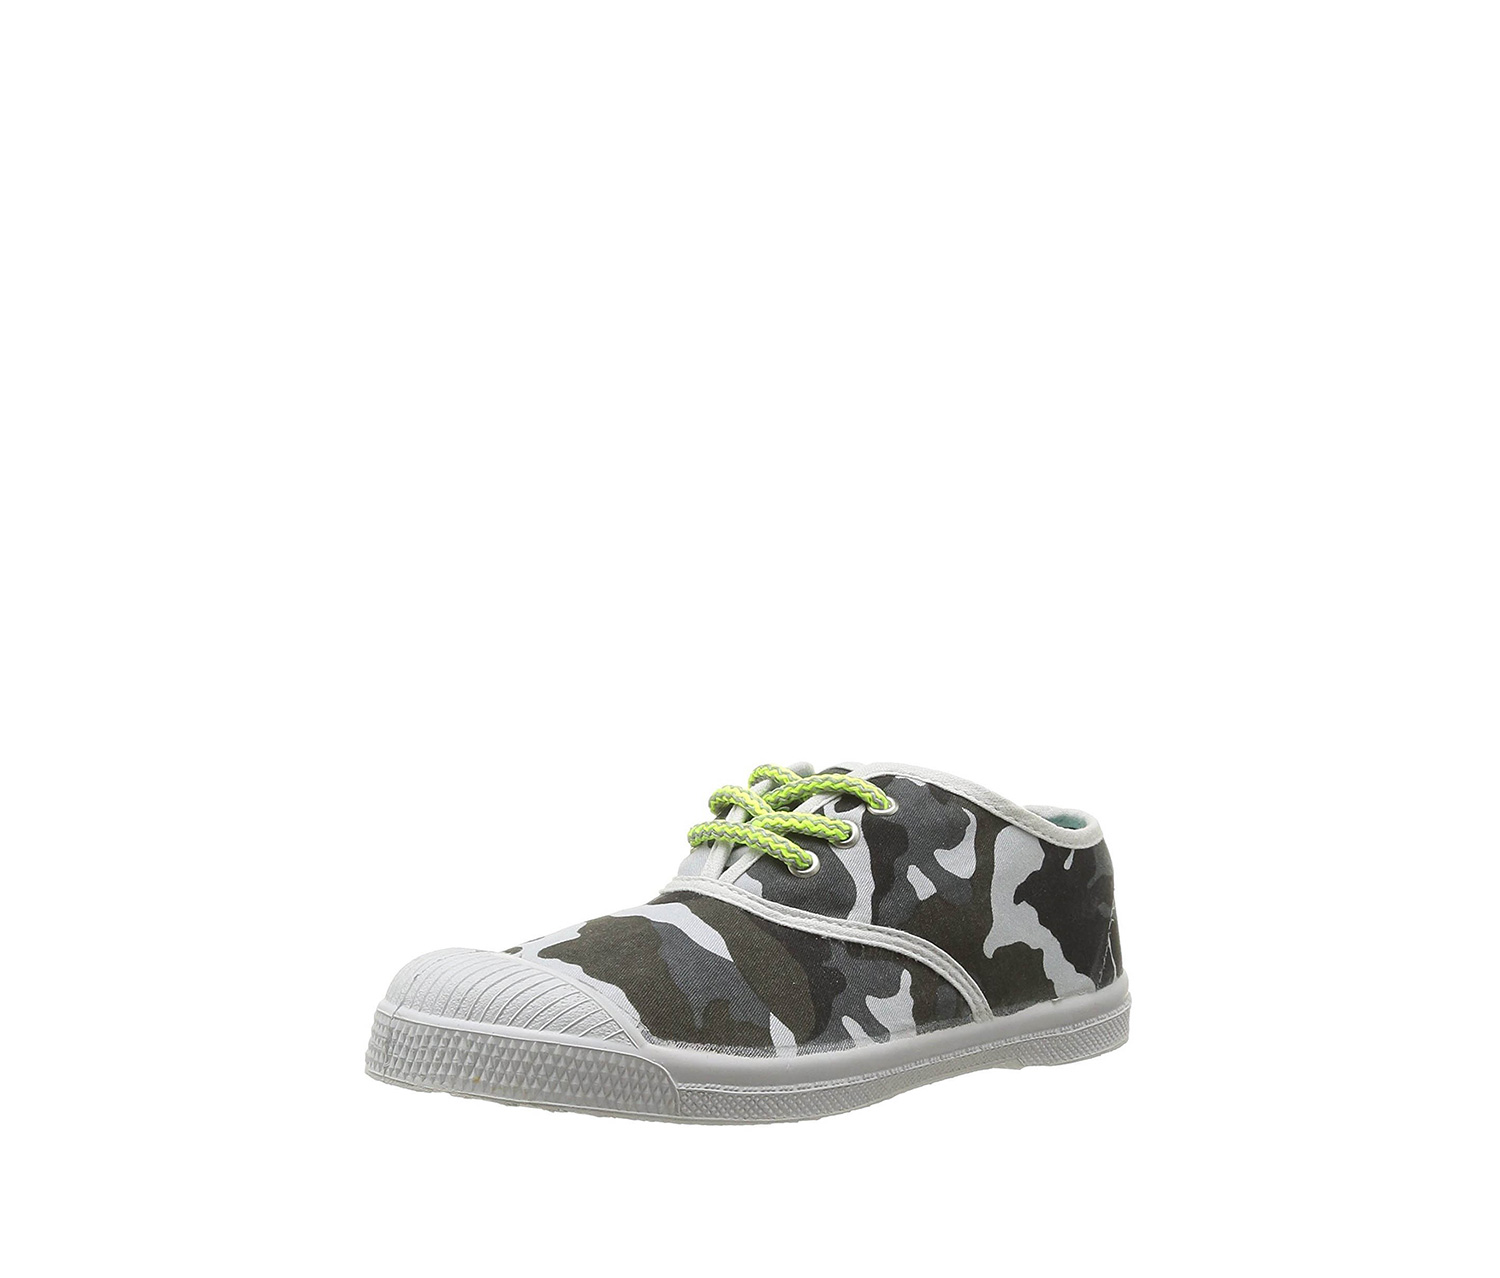 Bensimon Baby Boy's Sneakers, Grey